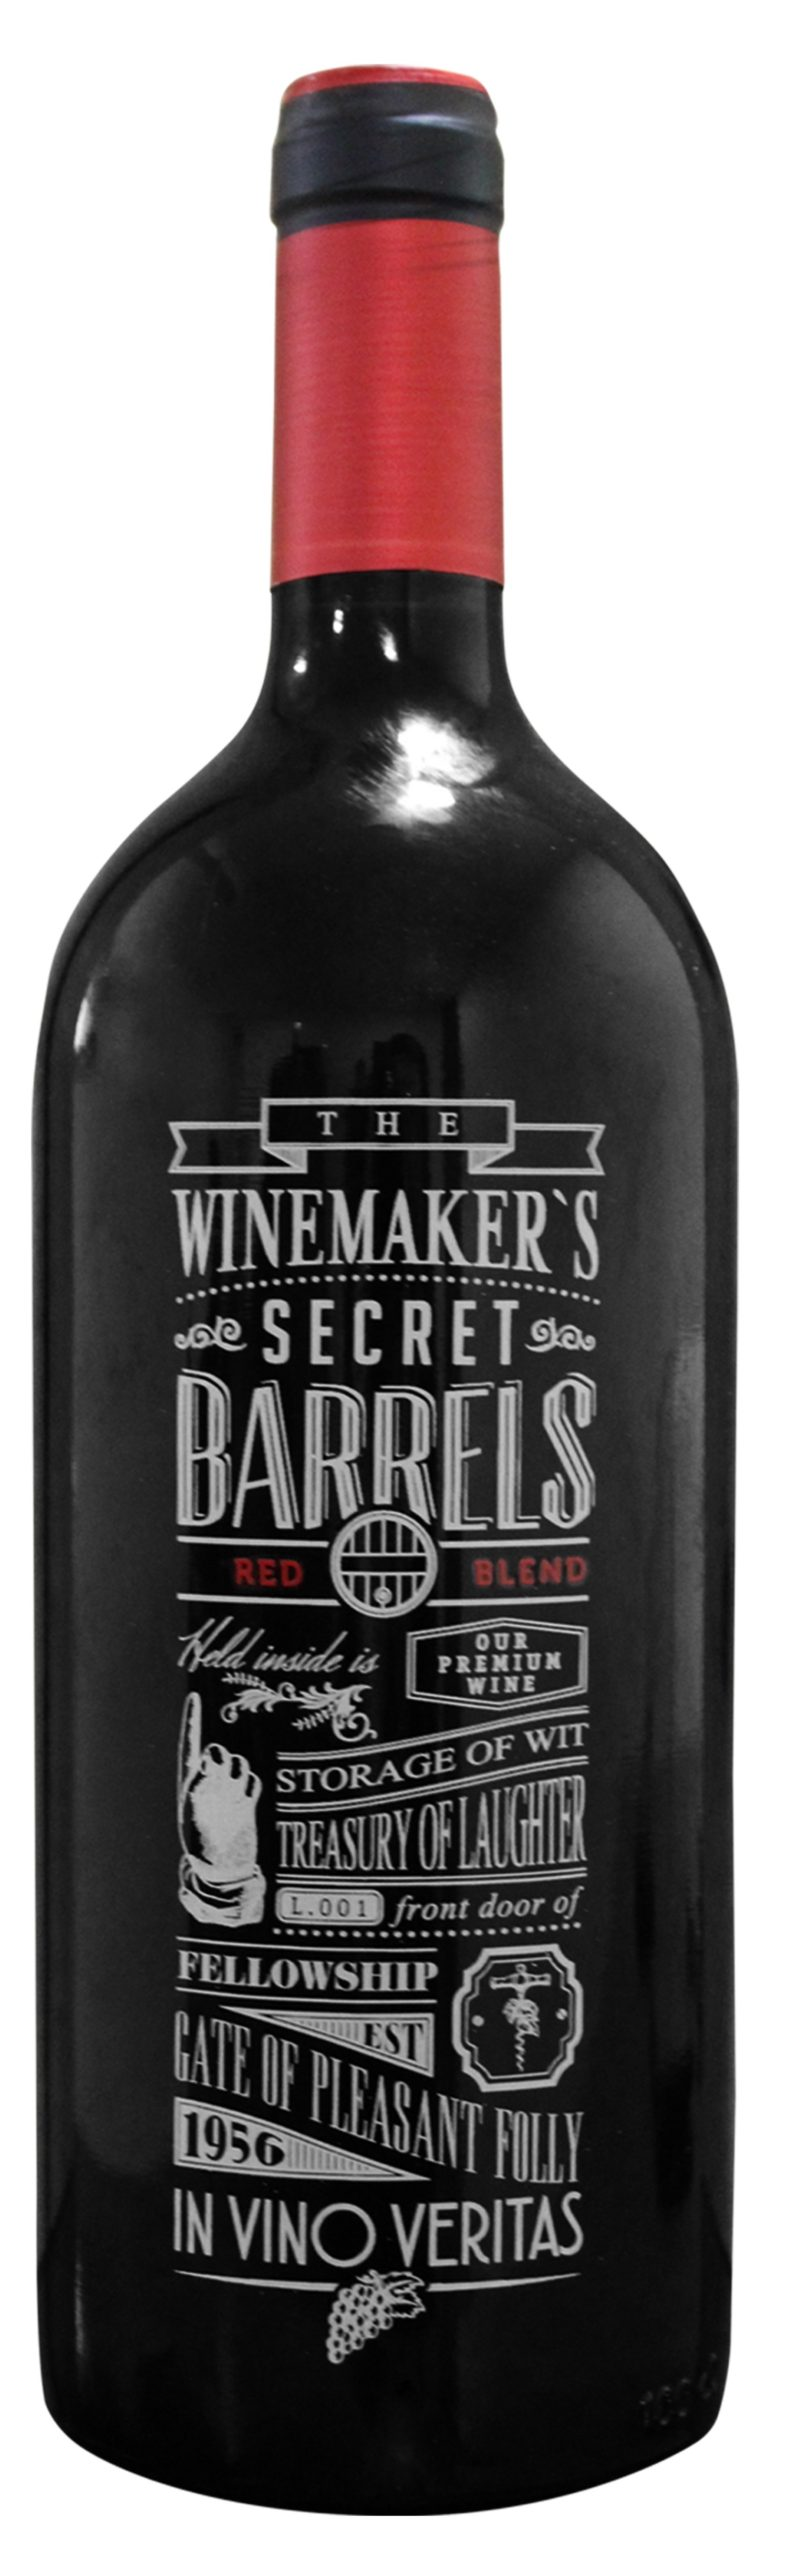 3-secret-barrel-20151217-scaled.jpg